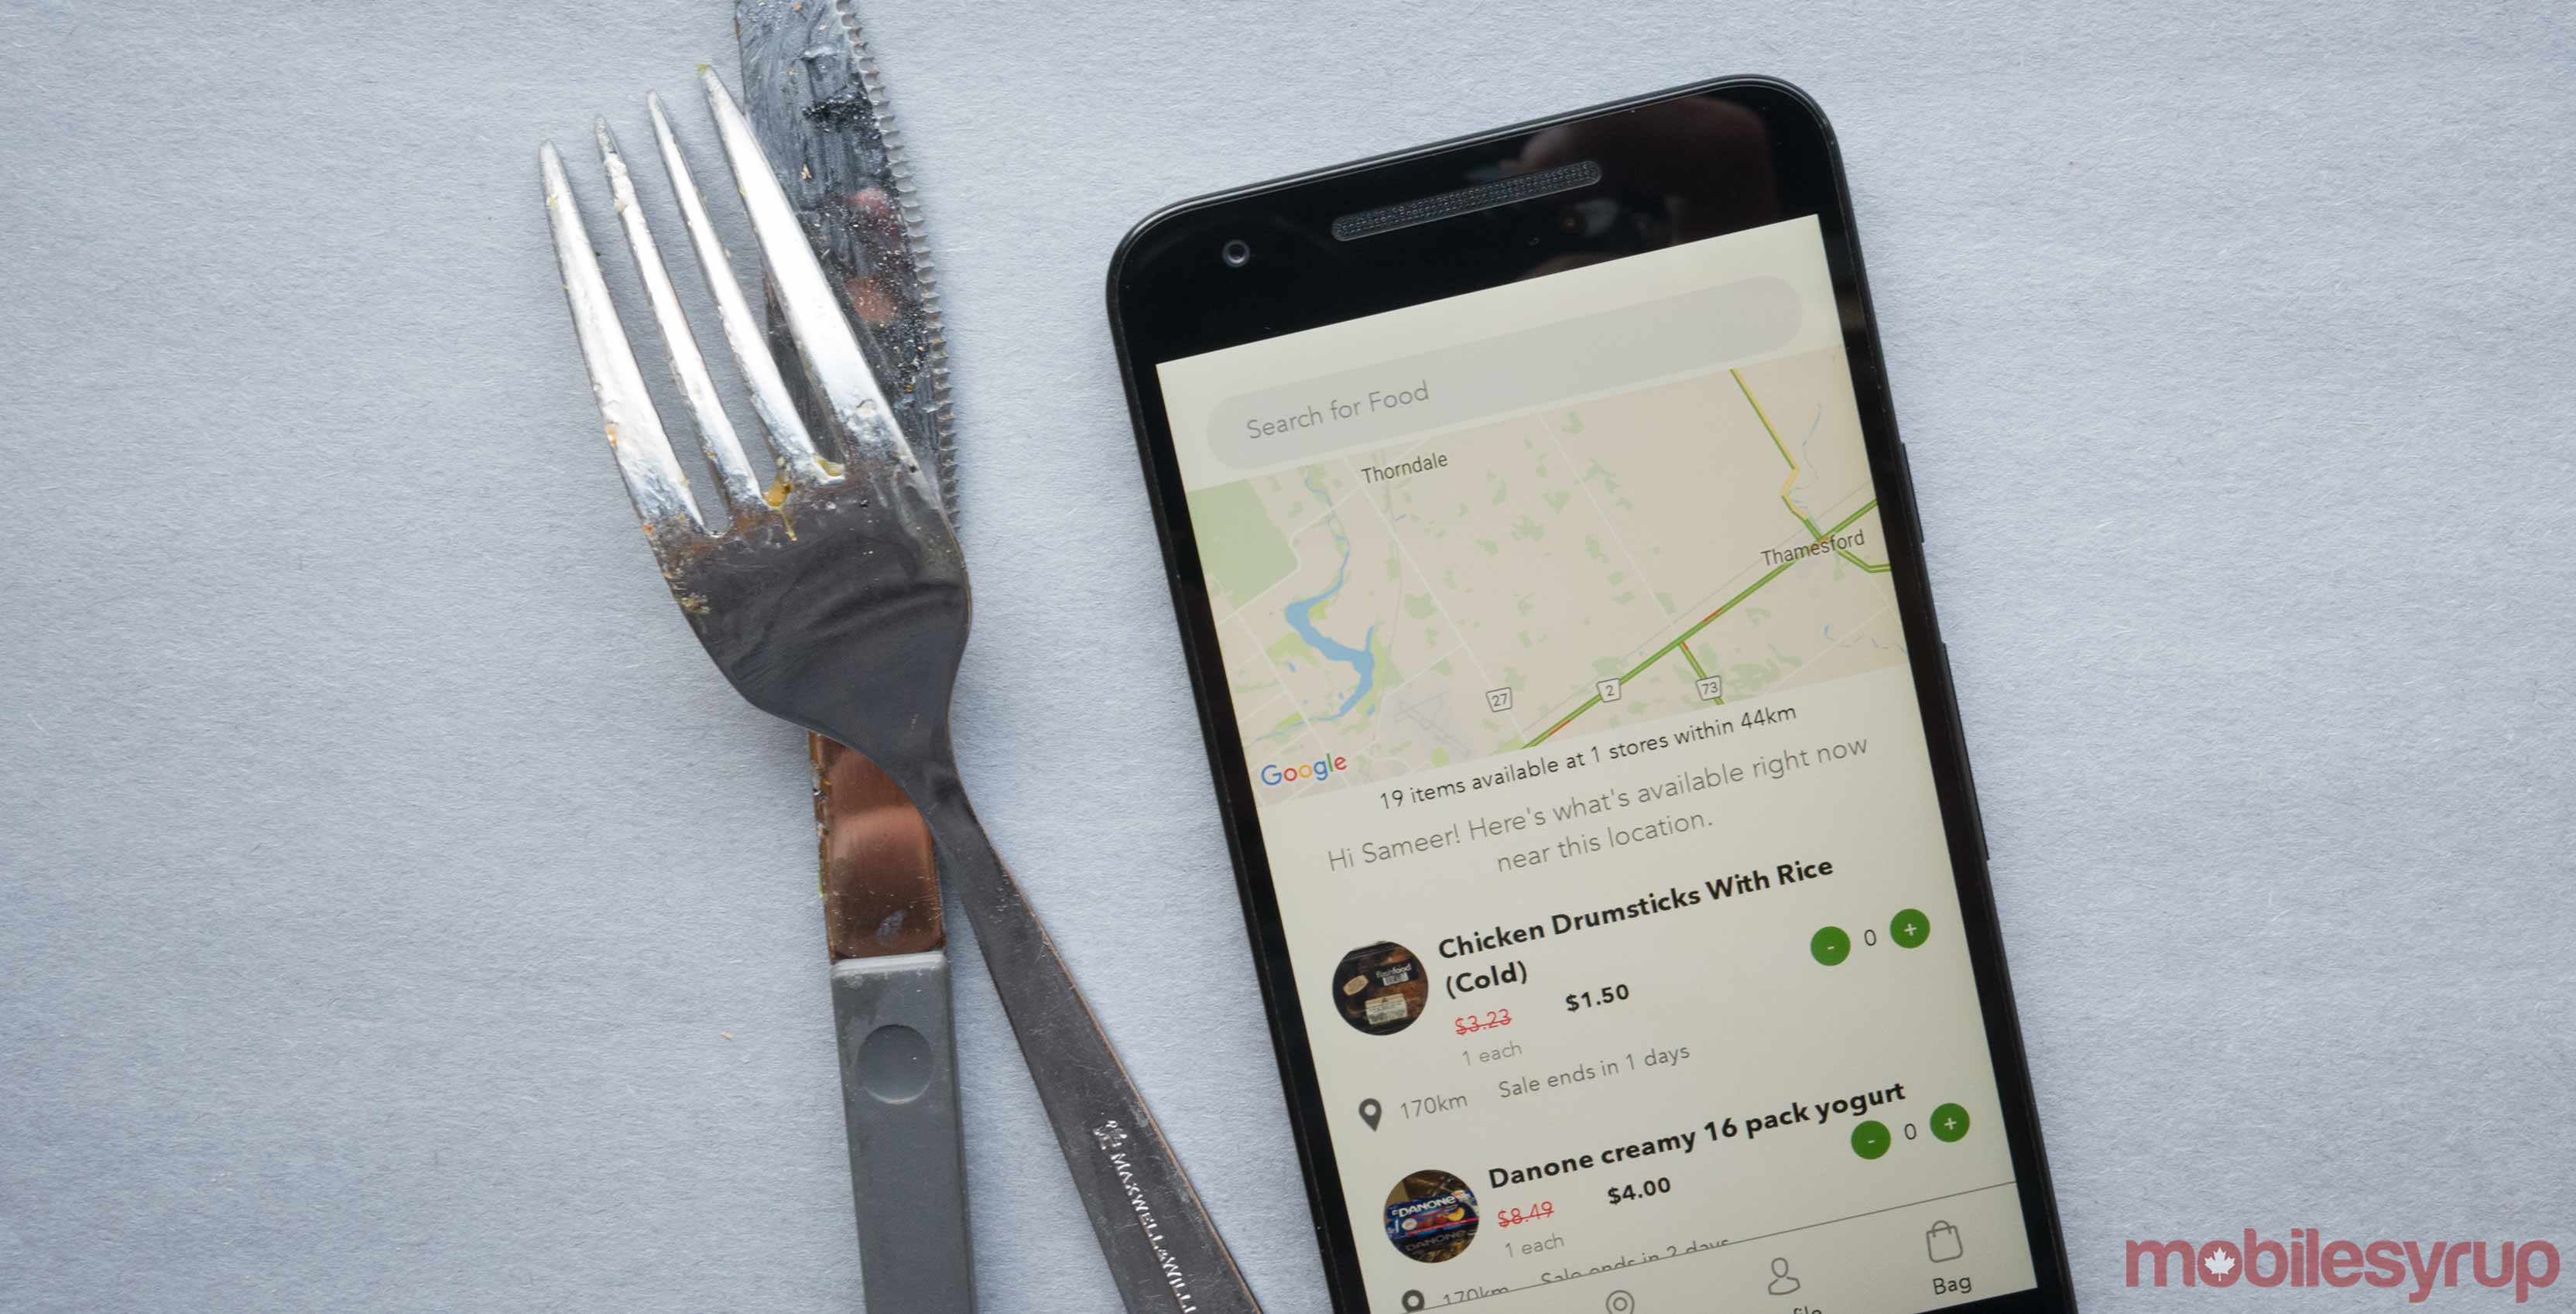 Image of Flashfood app next to a fork and knife